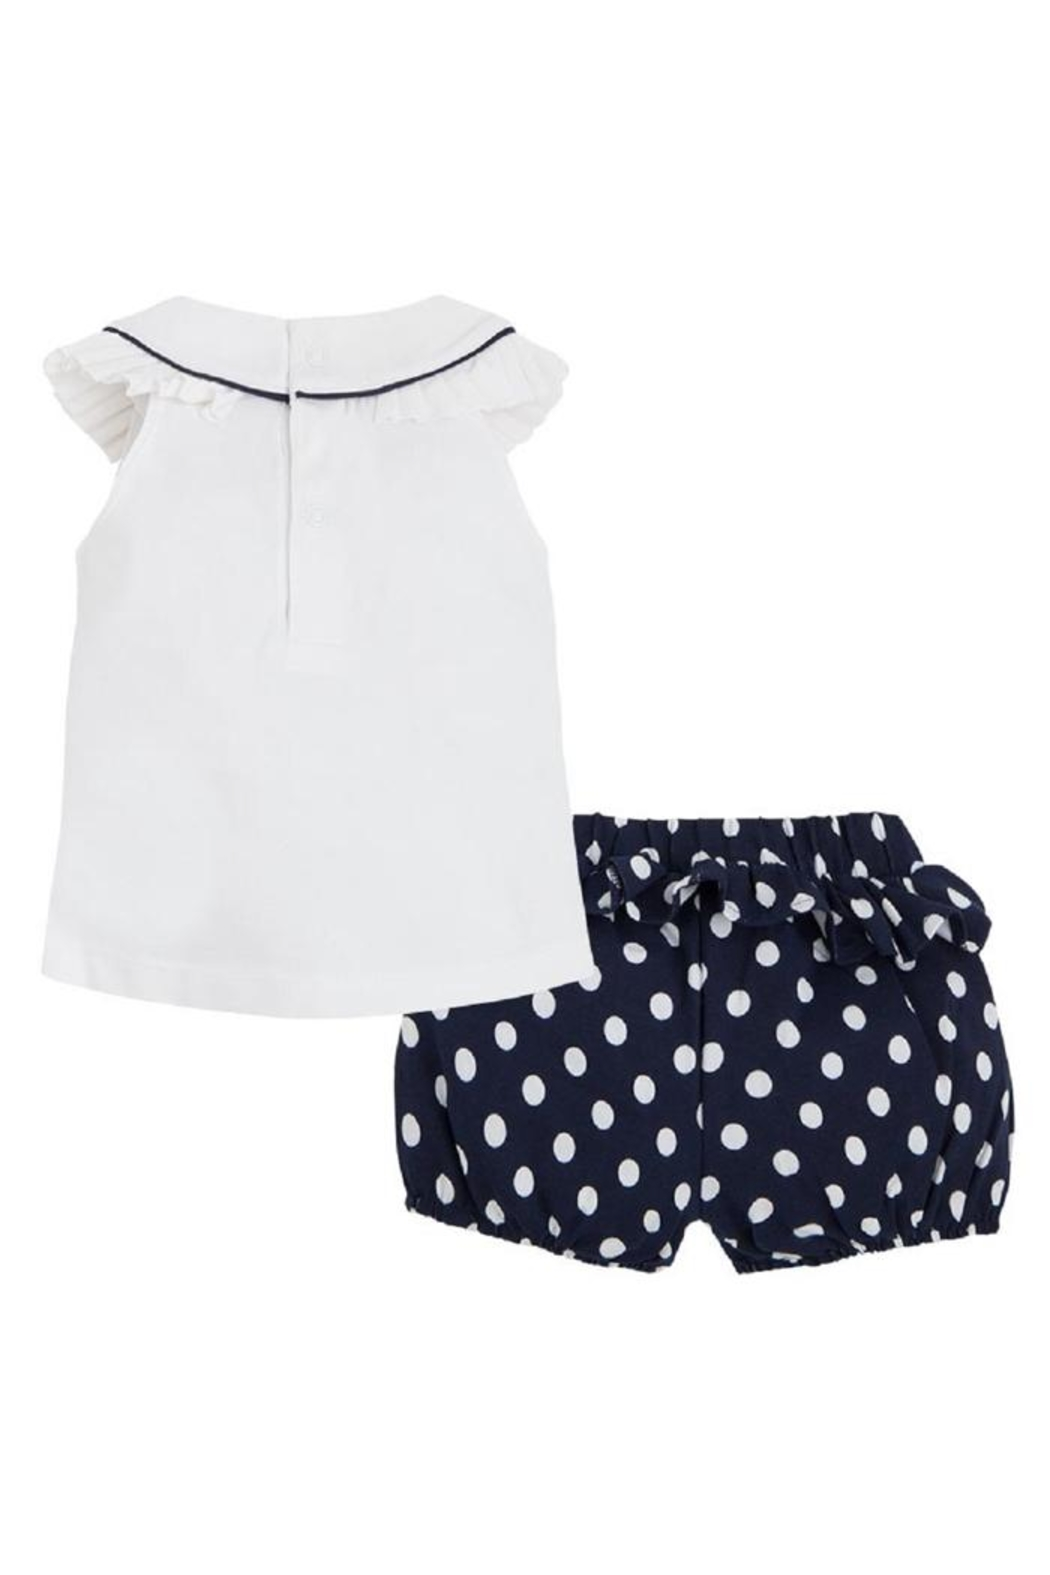 Mayoral Polka-Dot Short Set - Front Full Image